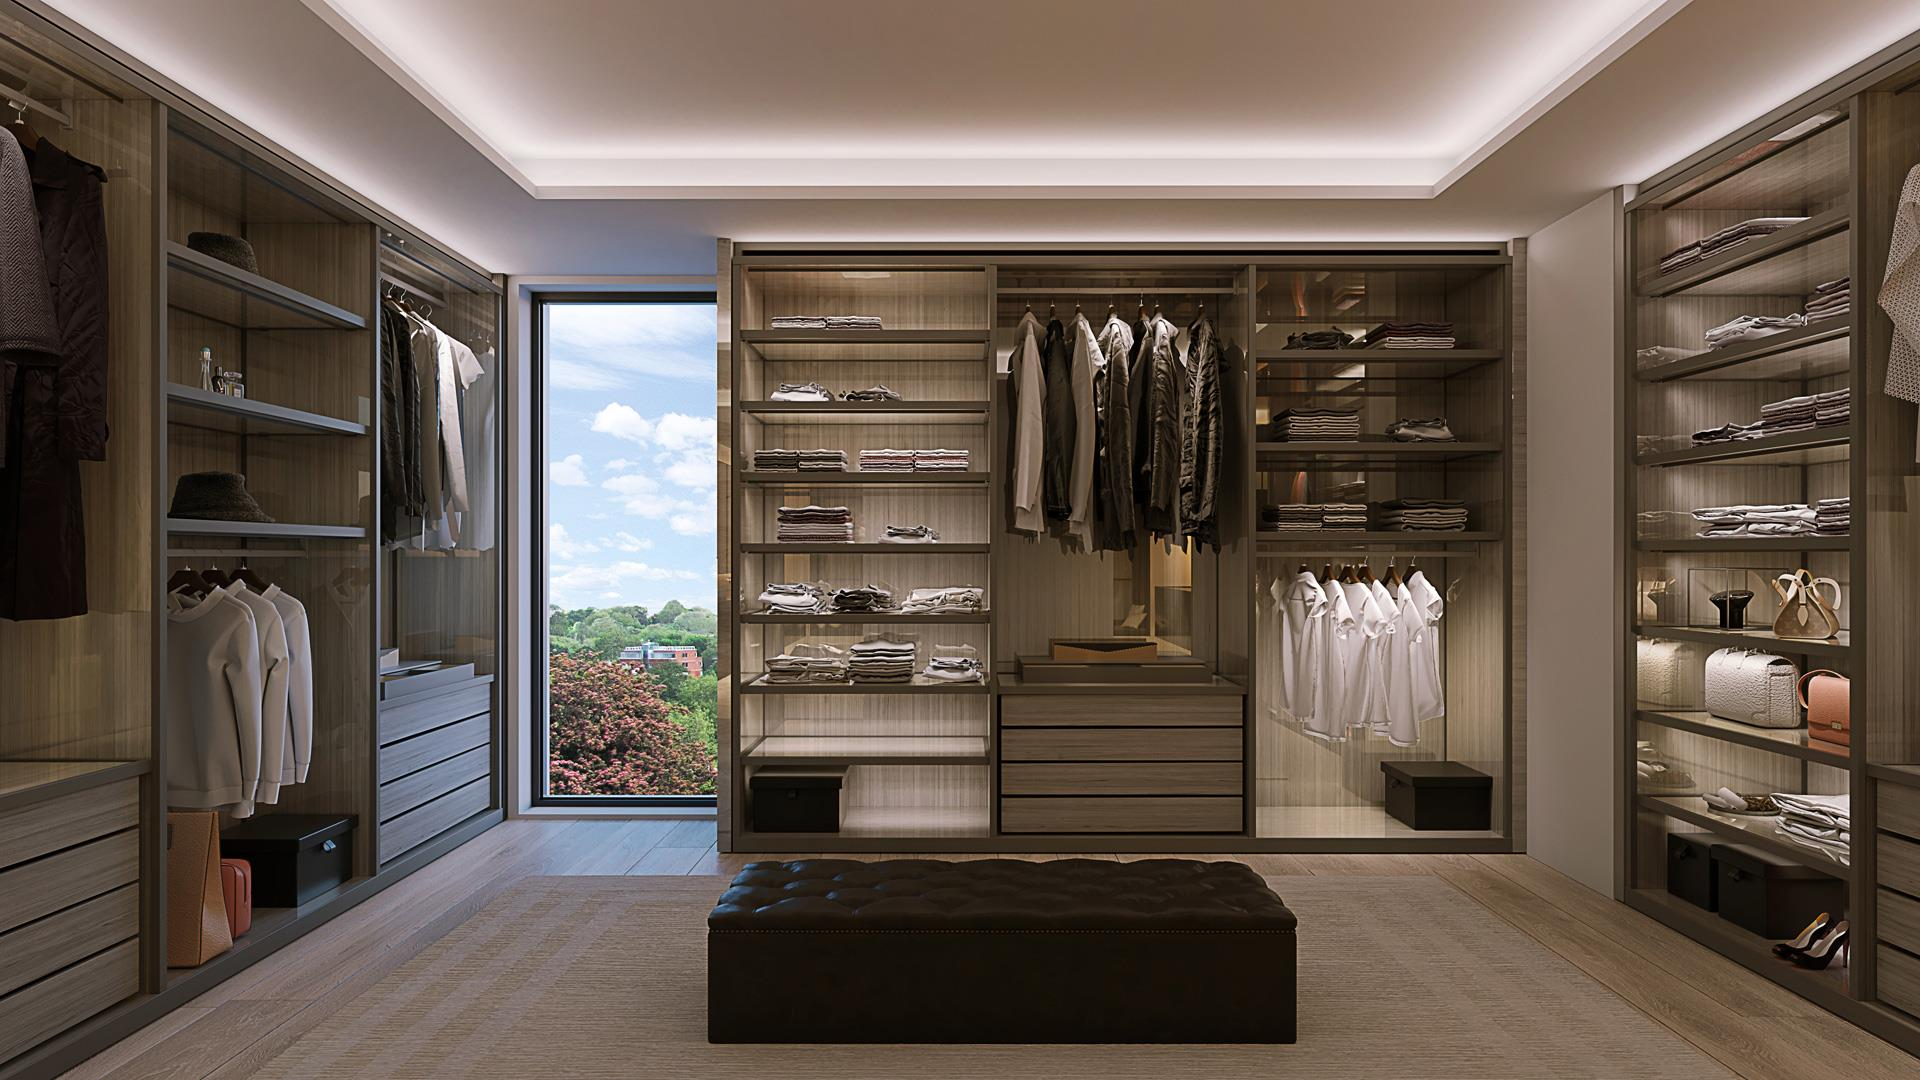 Rendering of 469 Spadina Homes interior walk-in closet.